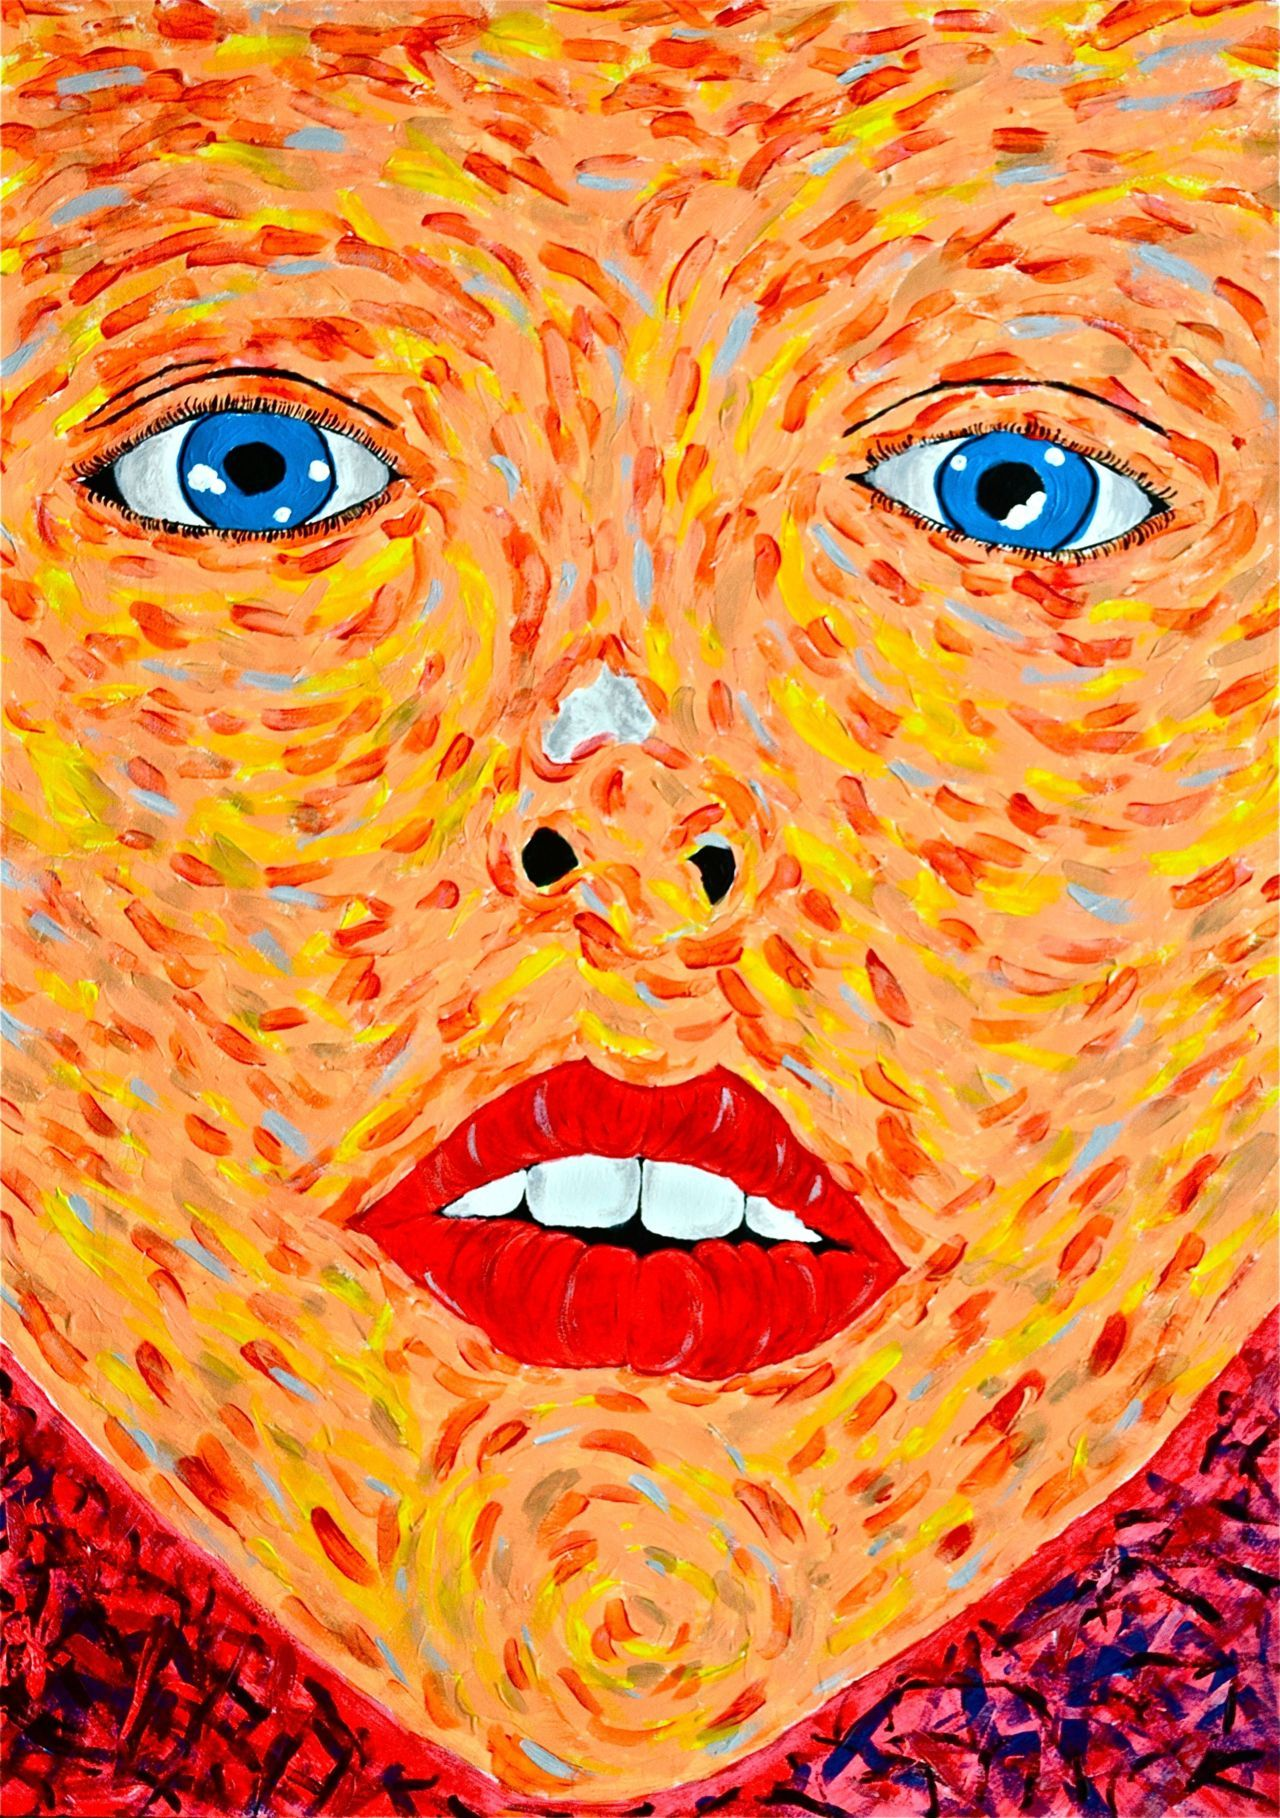 BLUE EYES | by Anthony Bila Acrylic on A2 110 GSM paper. 2011.